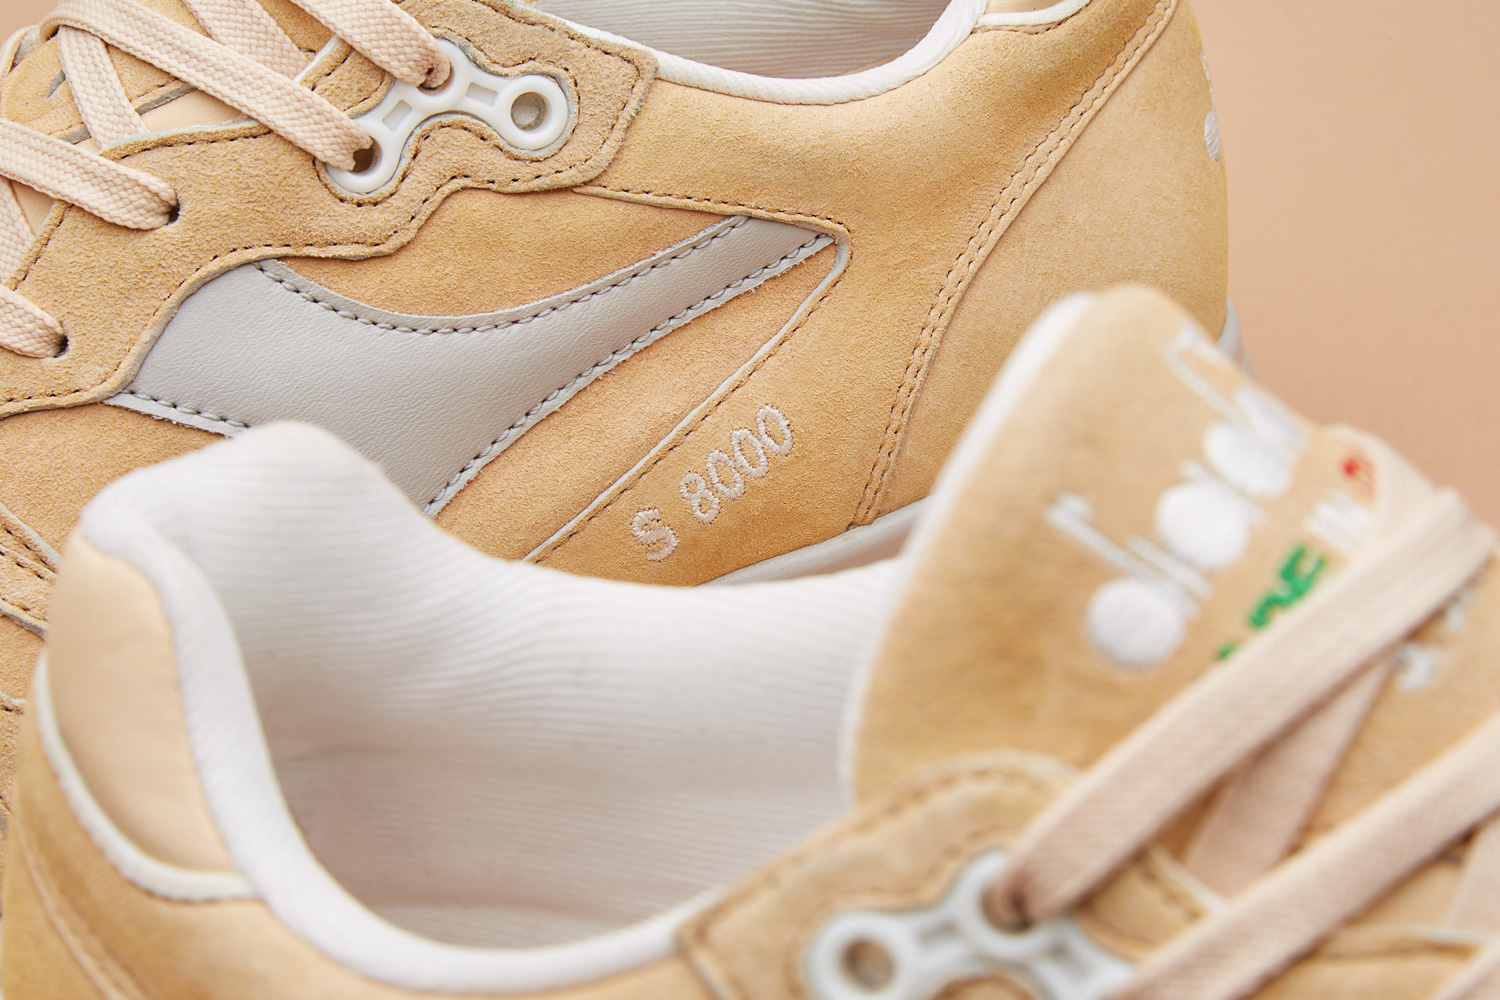 Diadora-S8000-Pigskin-Pack-Tan-02-coolsneakers